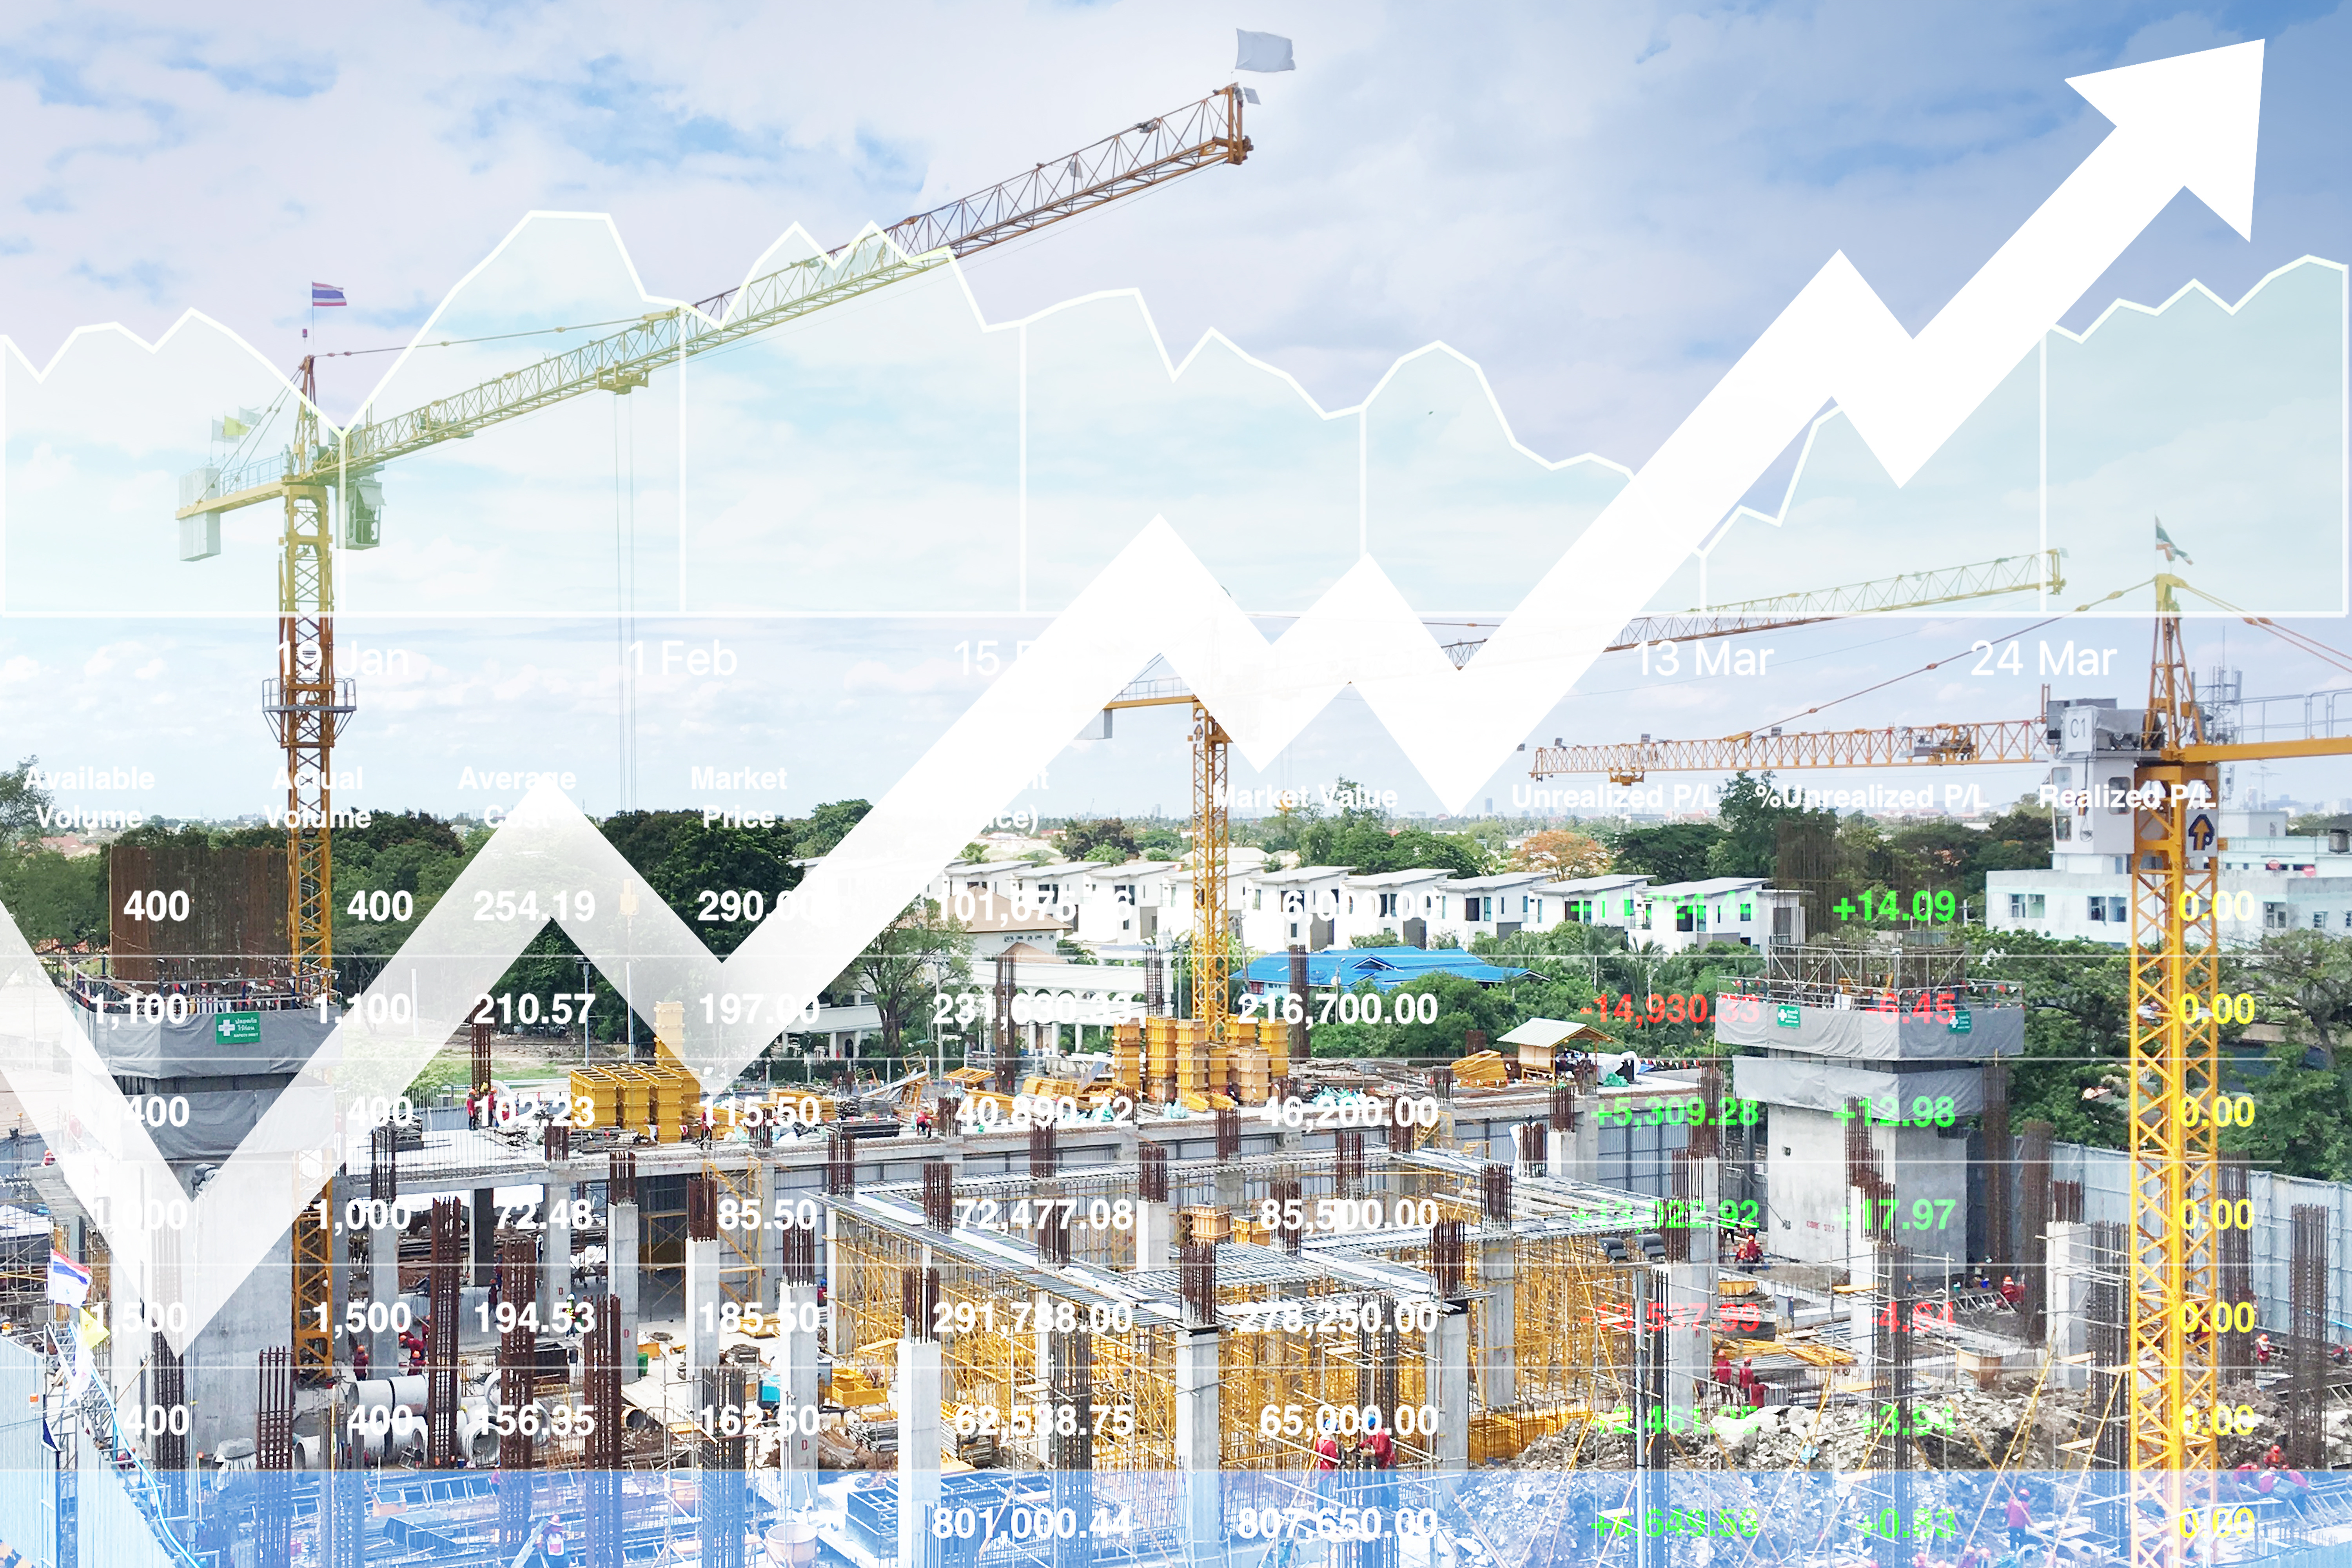 Commercial and Retail Construction Continues to Thrive